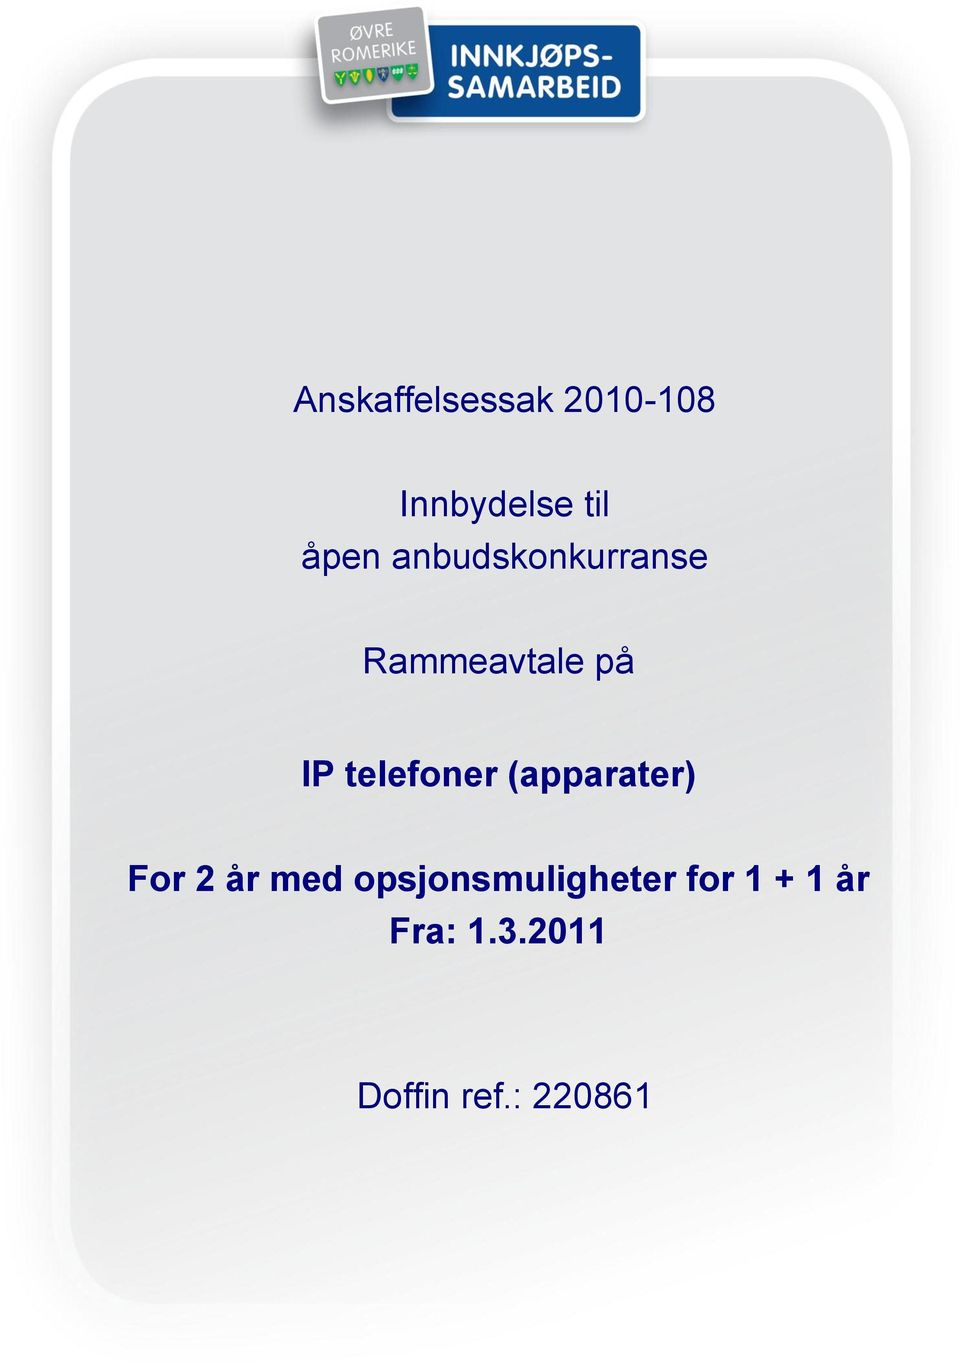 telefoner (apparater) For 2 år med